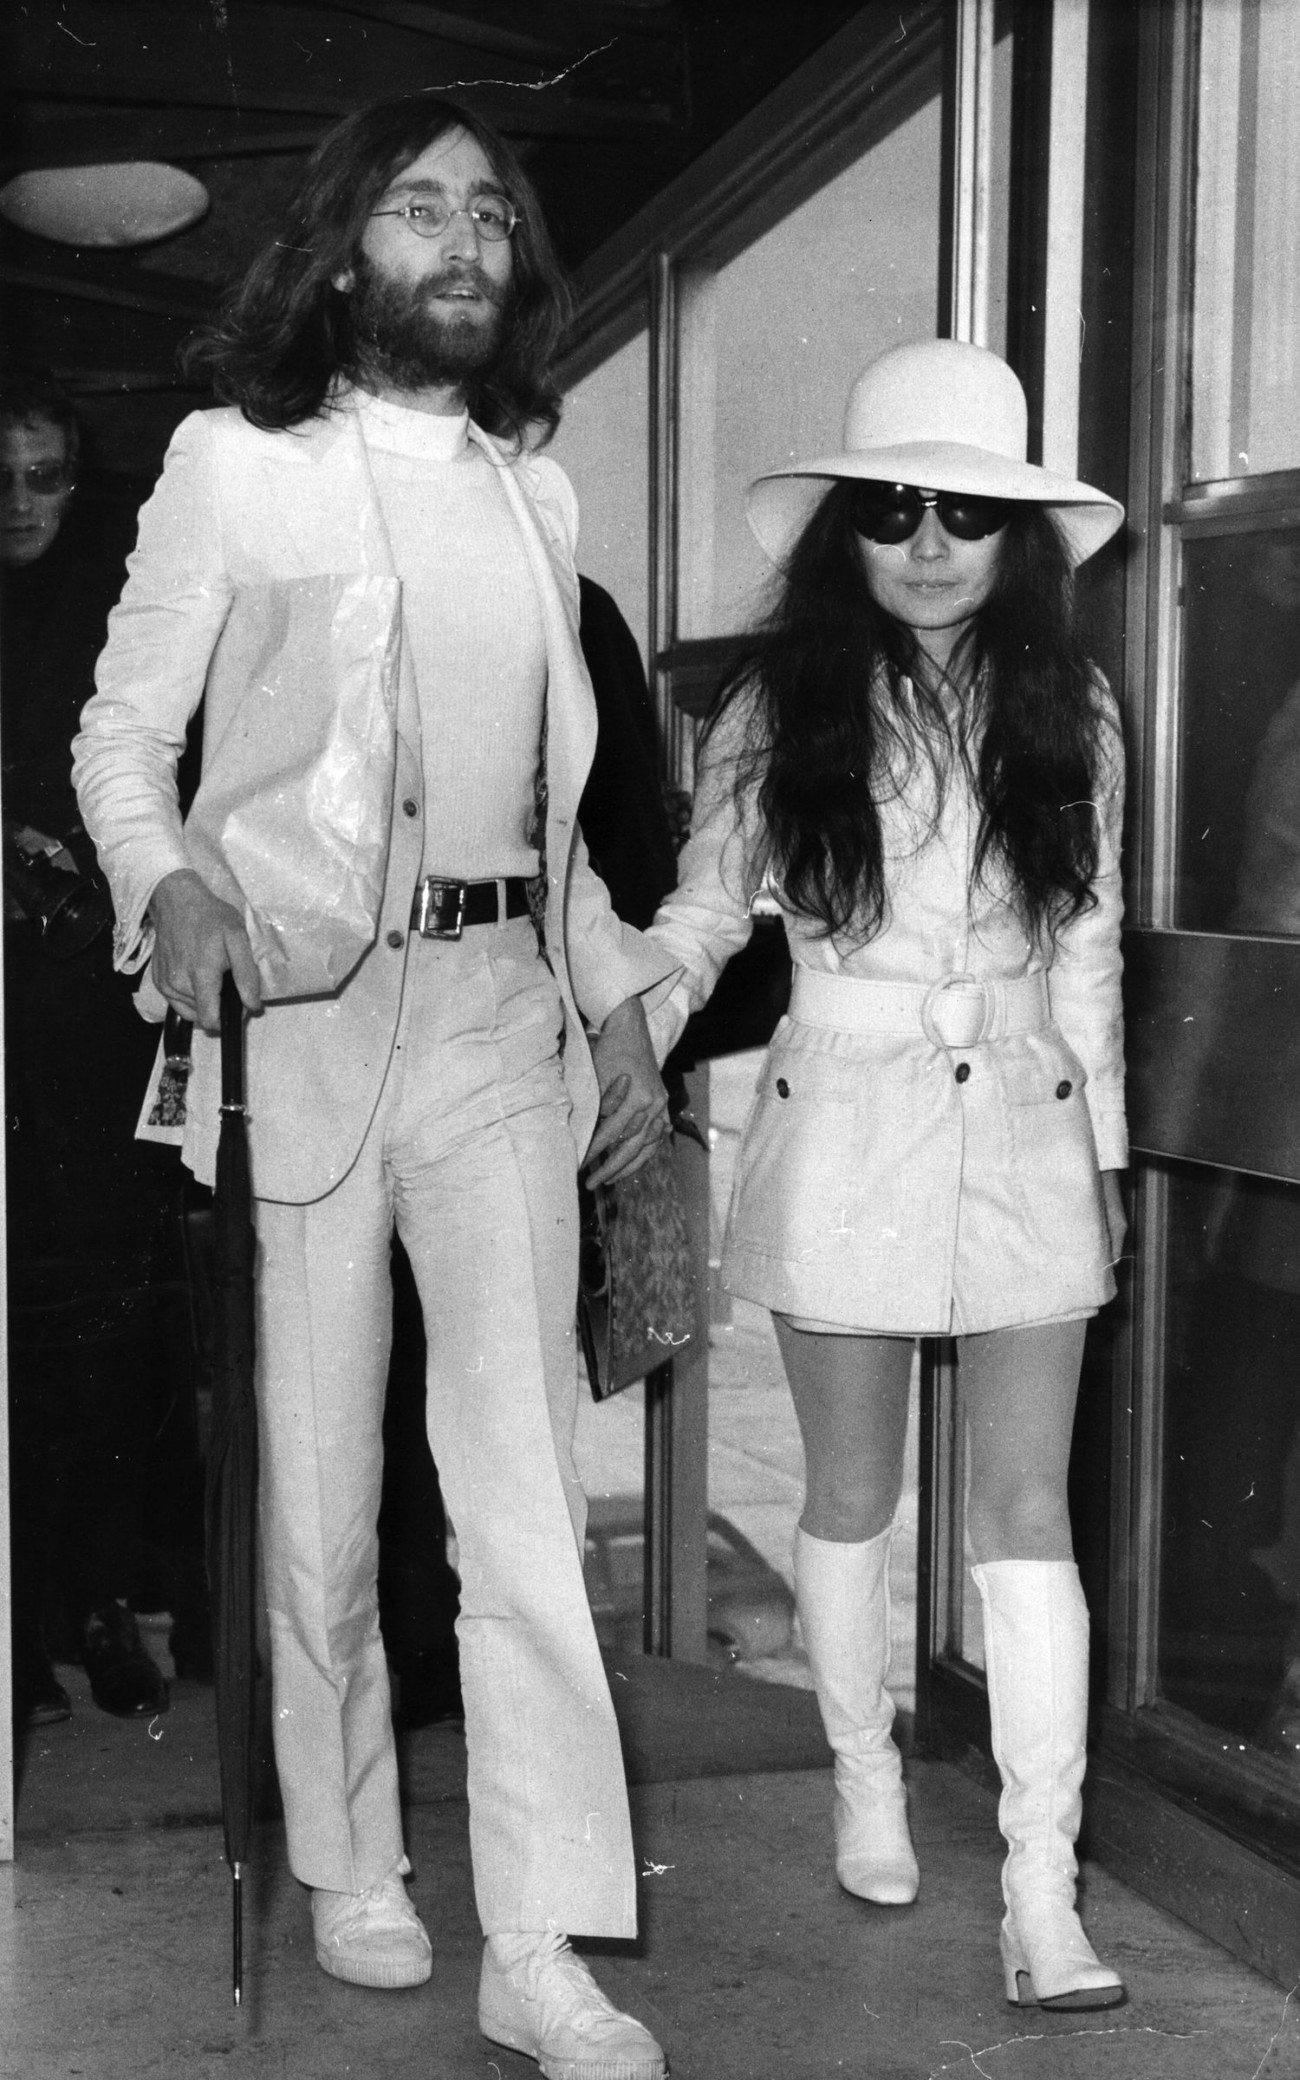 2nd April 1969:  Singer and songwriter John Lennon (1940 - 1980) and his wife artist Yoko Ono, both dressed in white at London Airport.  (Photo by Evening Standard/Getty Images)